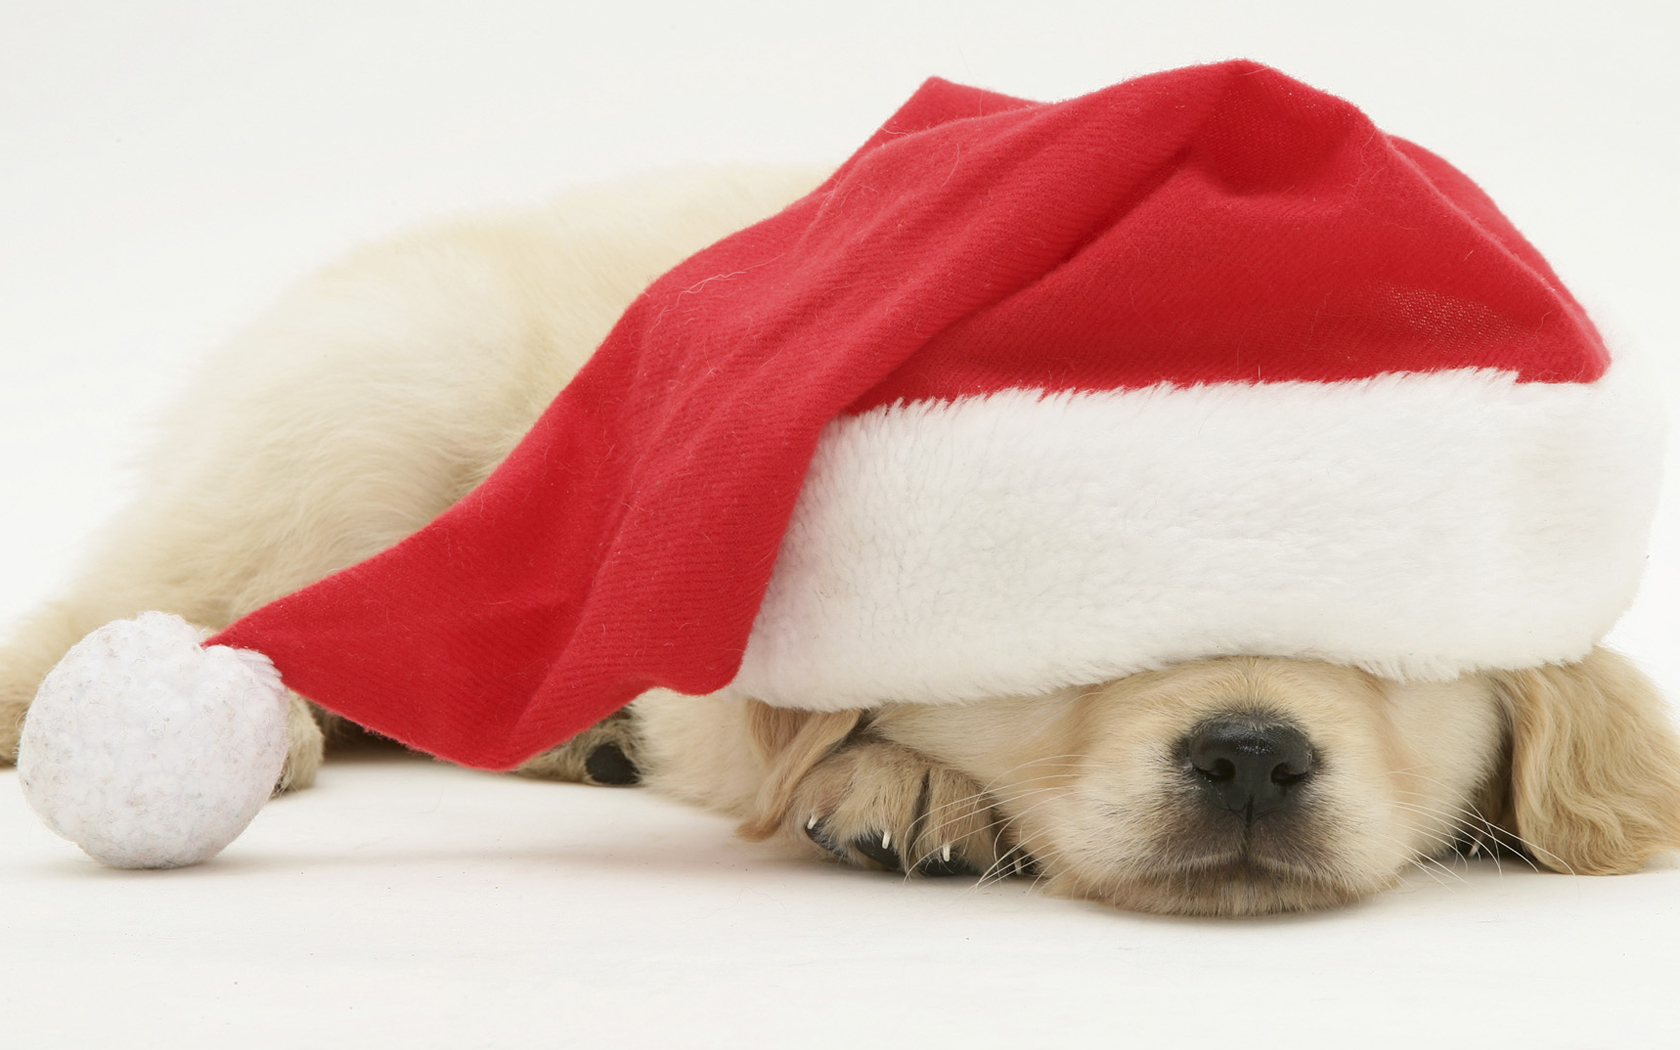 Cute Puppies Images Christmas Themed Puppy Pics Hd Wallpaper And